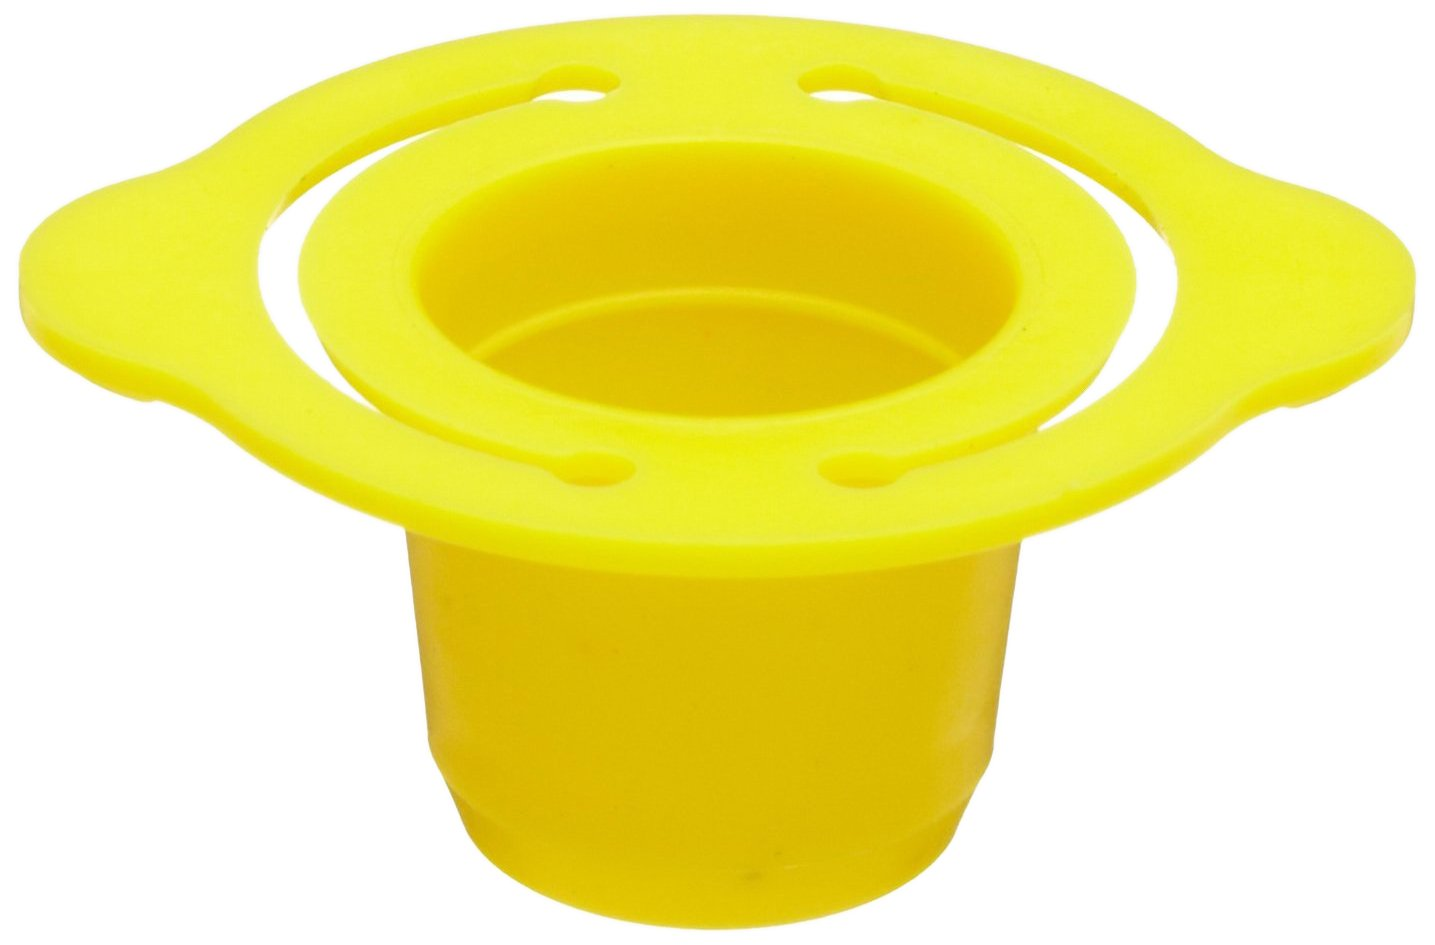 1.1417 Tube OD Item OD Pack of 100 Poppelman Plastics 61501140000 Pack of 100 Yellow 1.1417 Tube OD Item OD Kapsto 615 UL 114 Polyethylene Universal Protection with Ring Lug